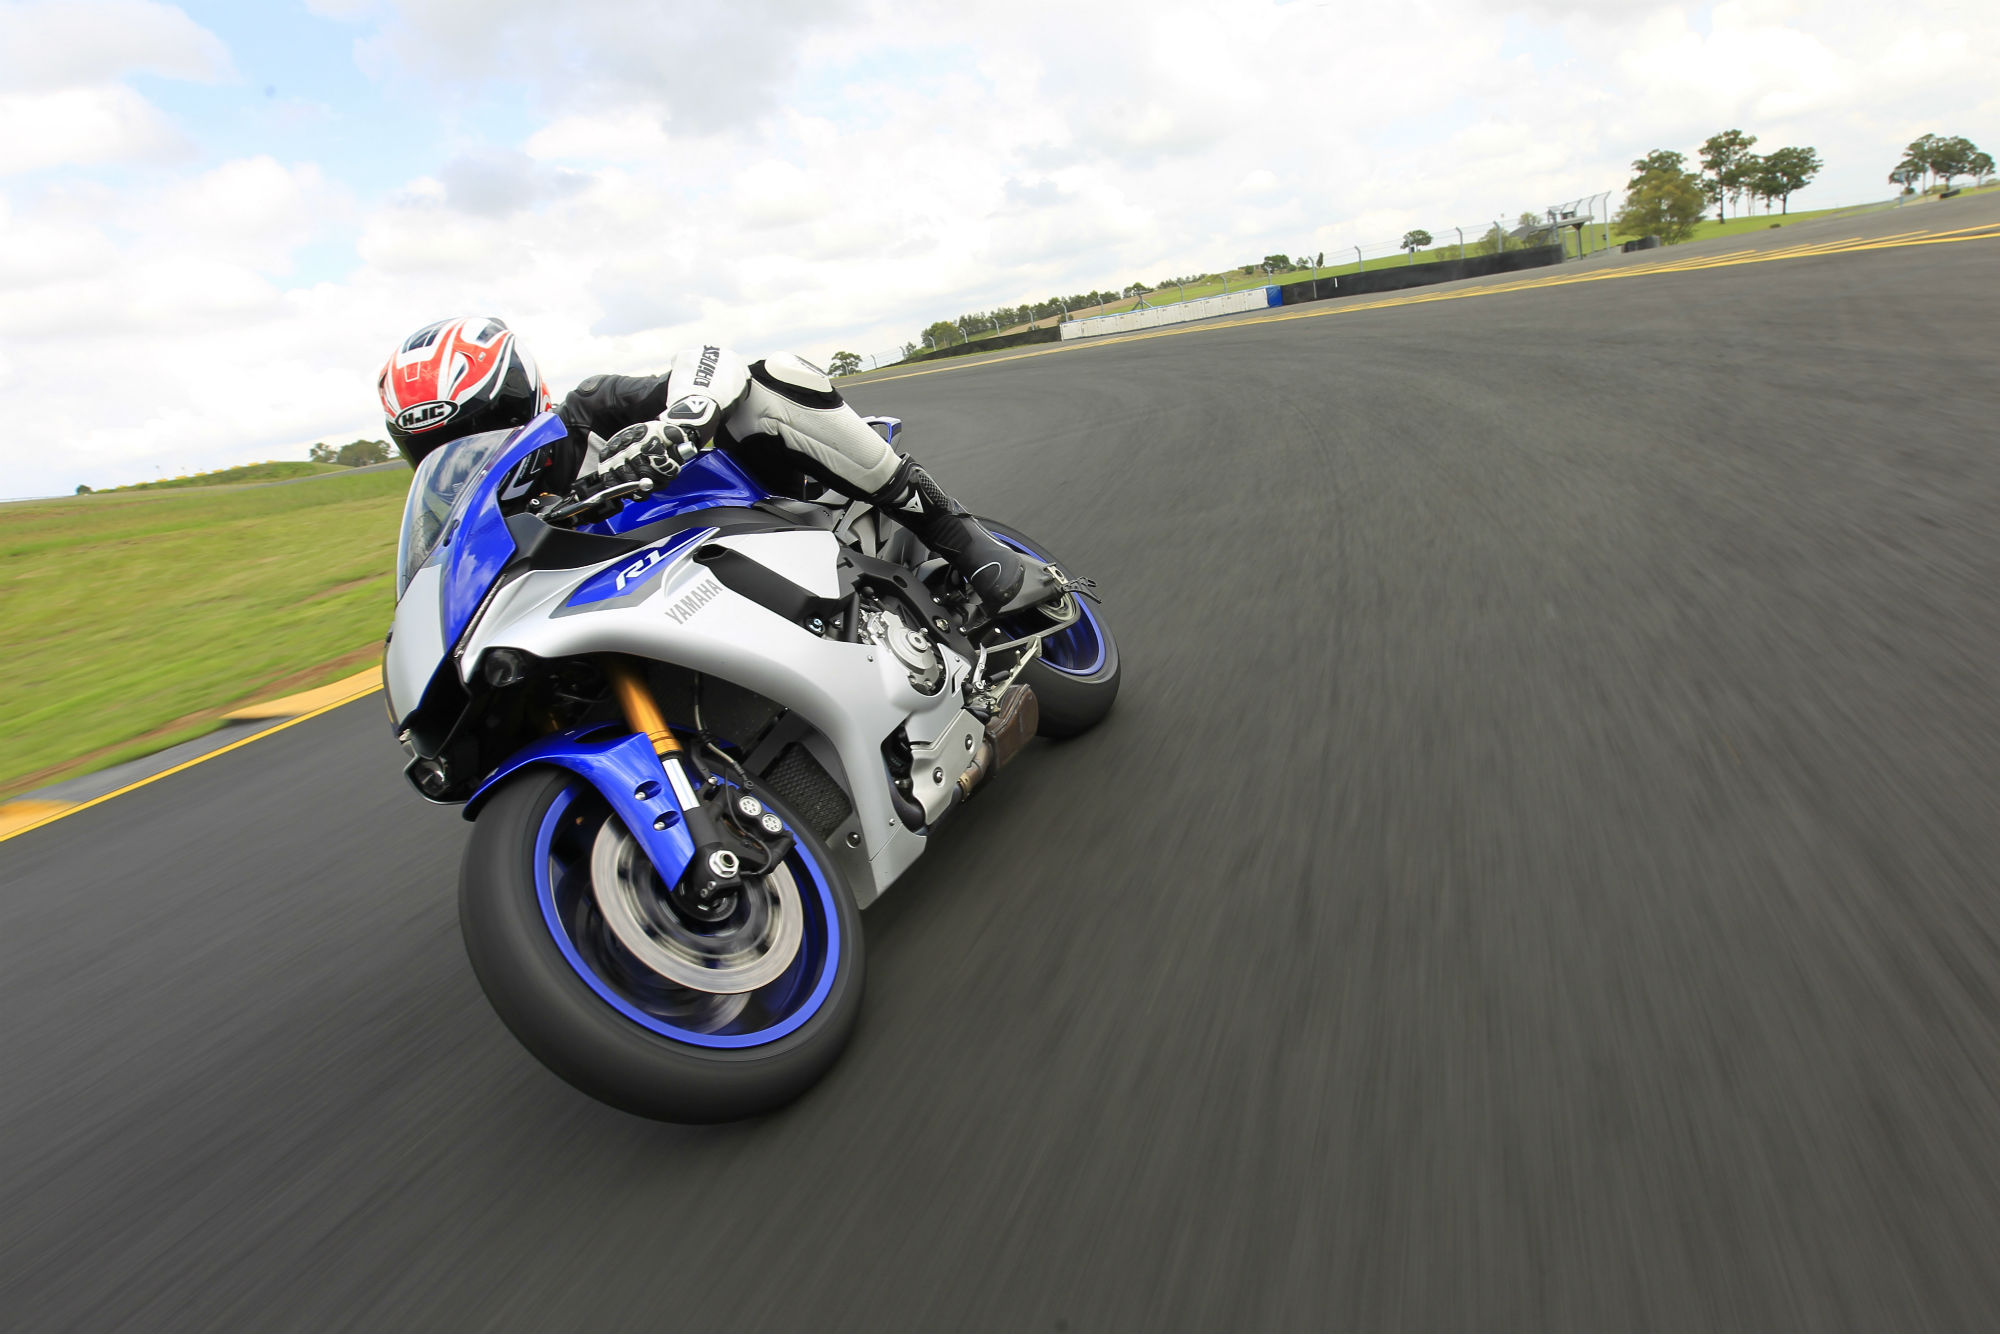 yamaha r1. from the moment yamaha unveiled all-new 200hp r1 last year, it was clear going to be a serious weapon. was, firm said, developed not from